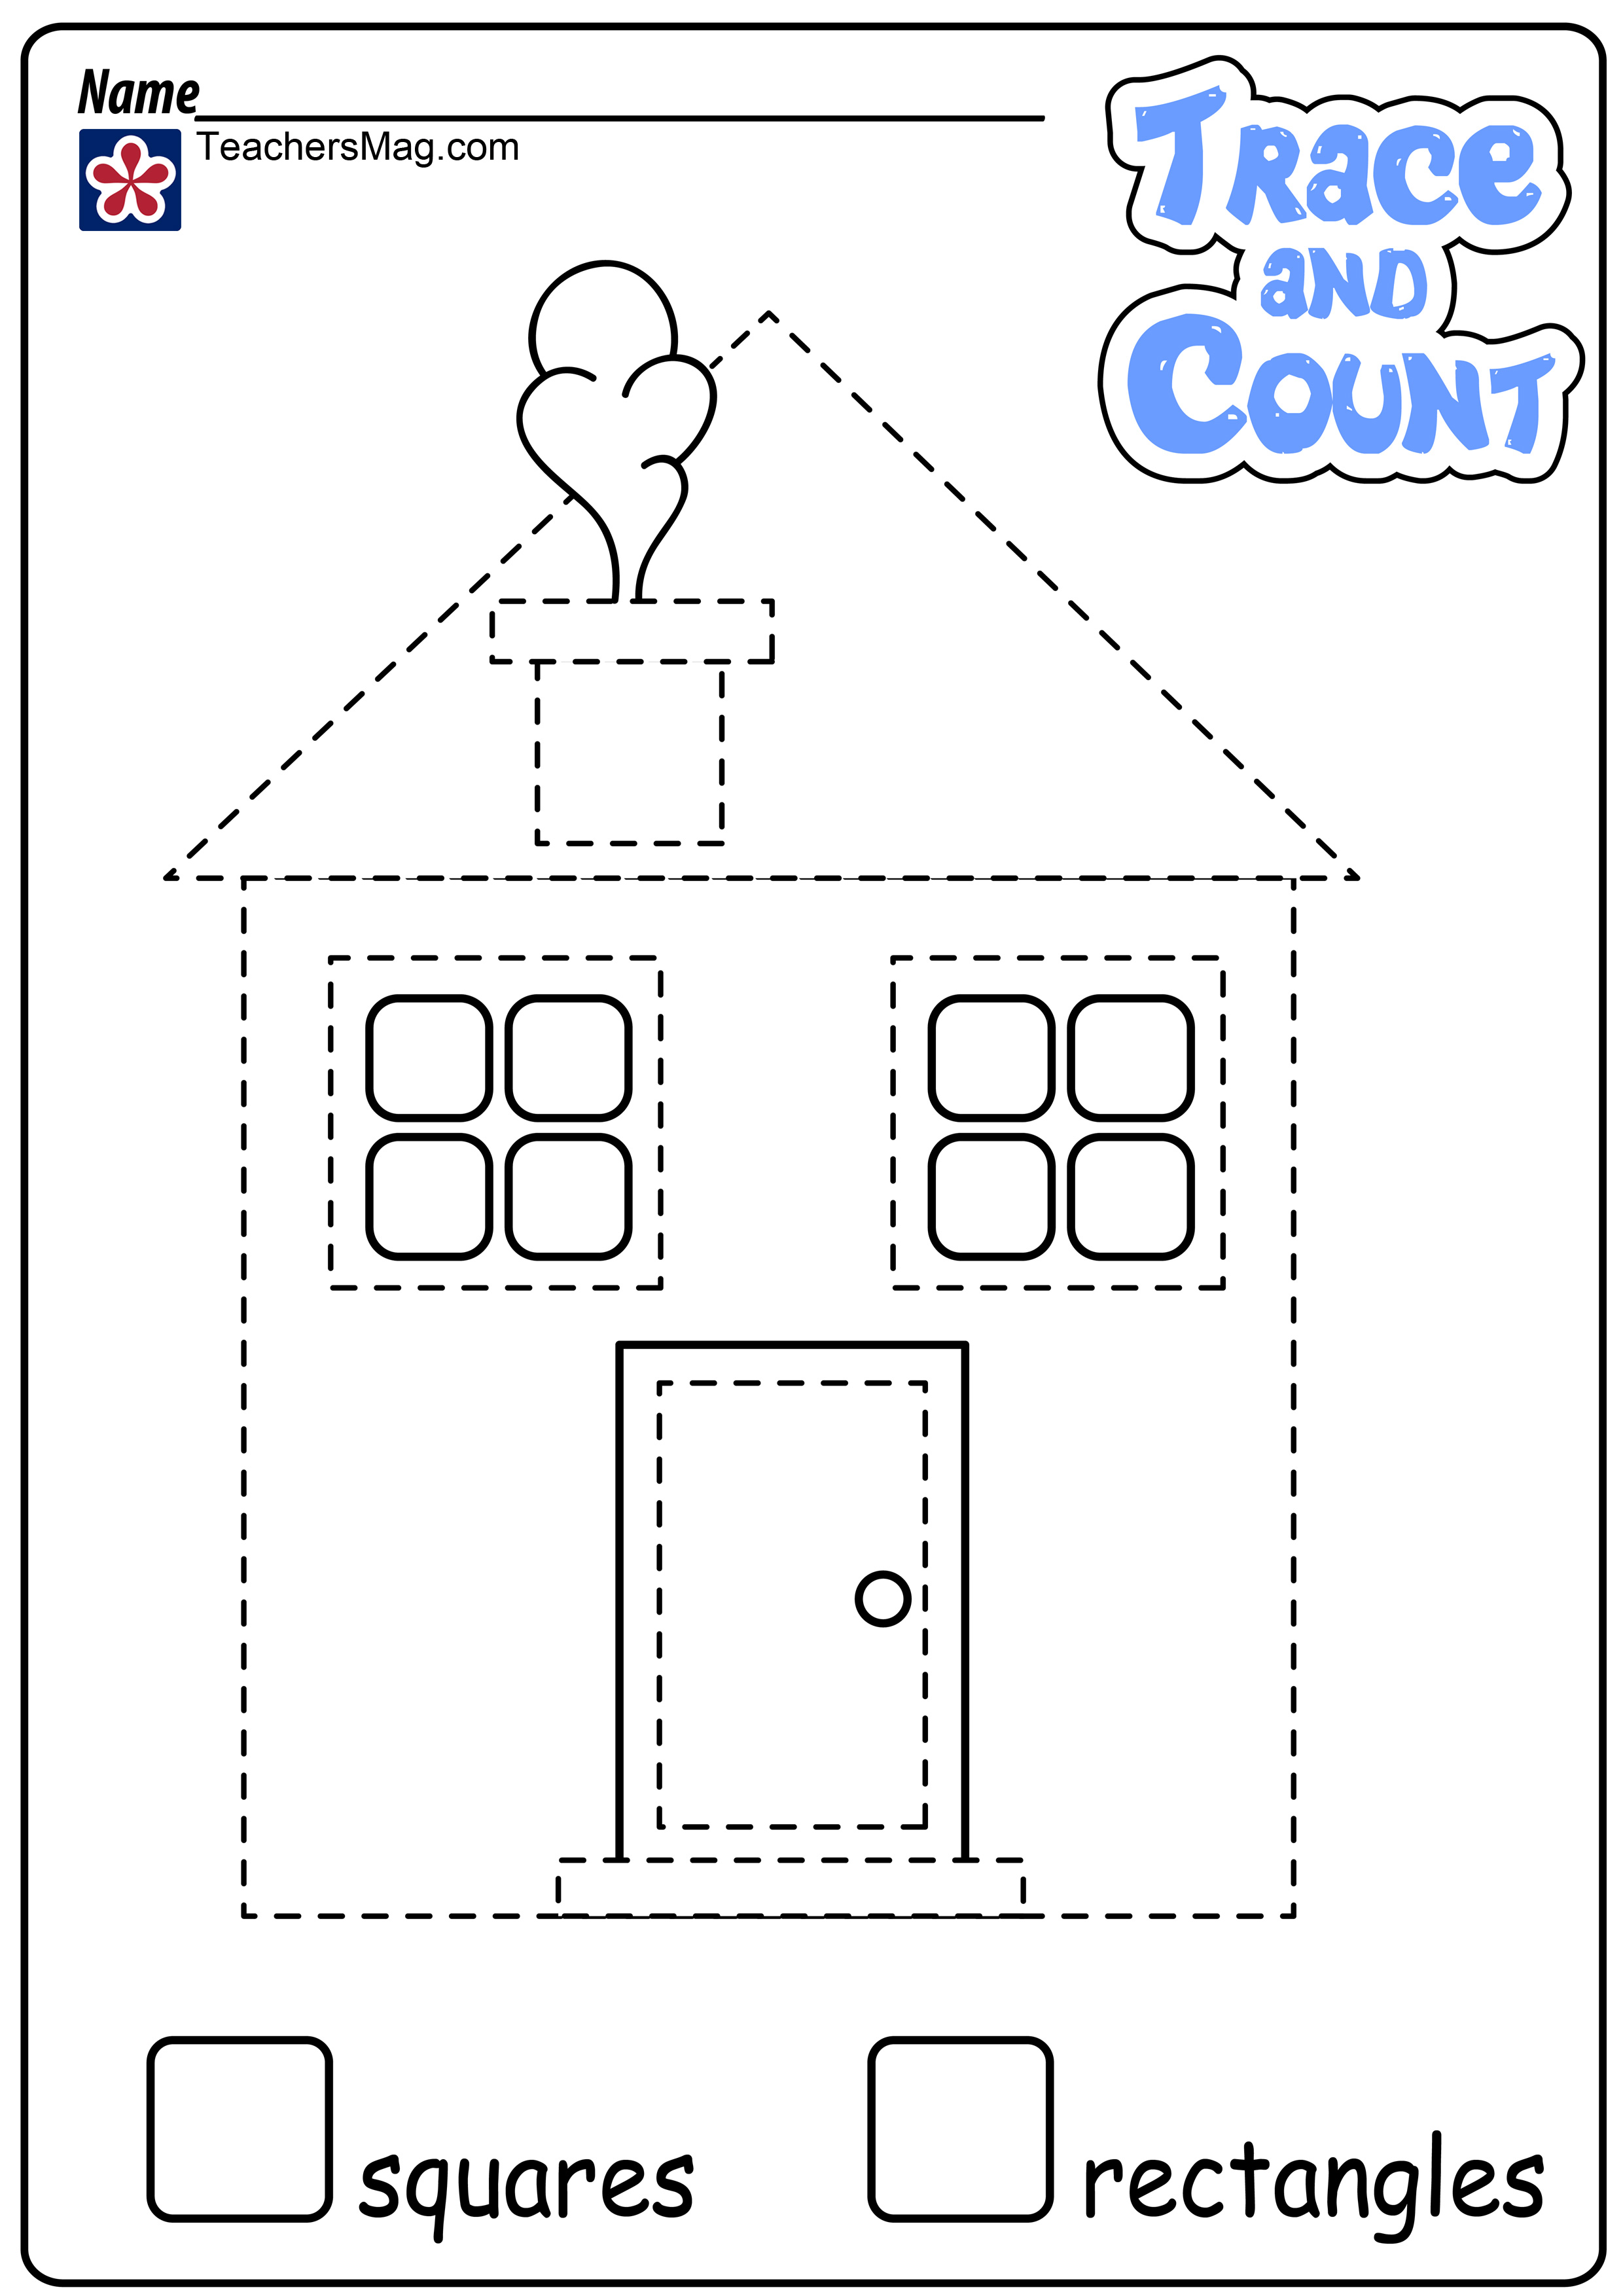 Recognizing Rectangles Worksheet